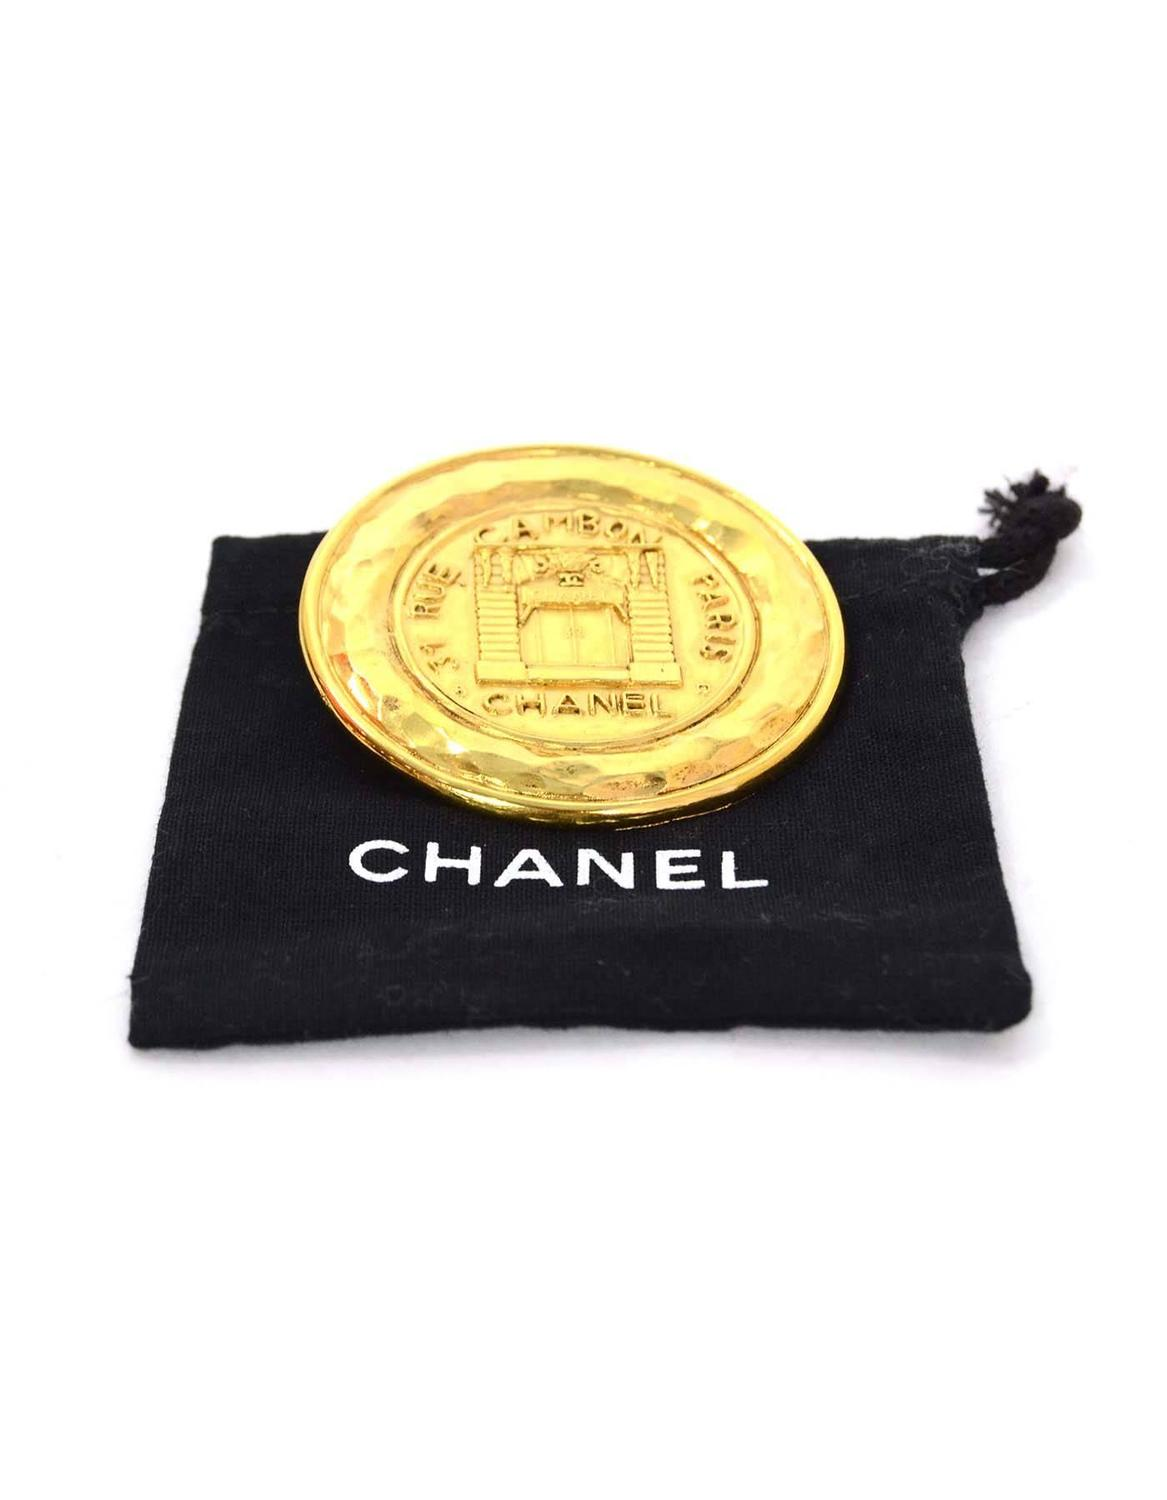 Chanel Vintage '90s Gold Coin Brooch For Sale at 1stdibs